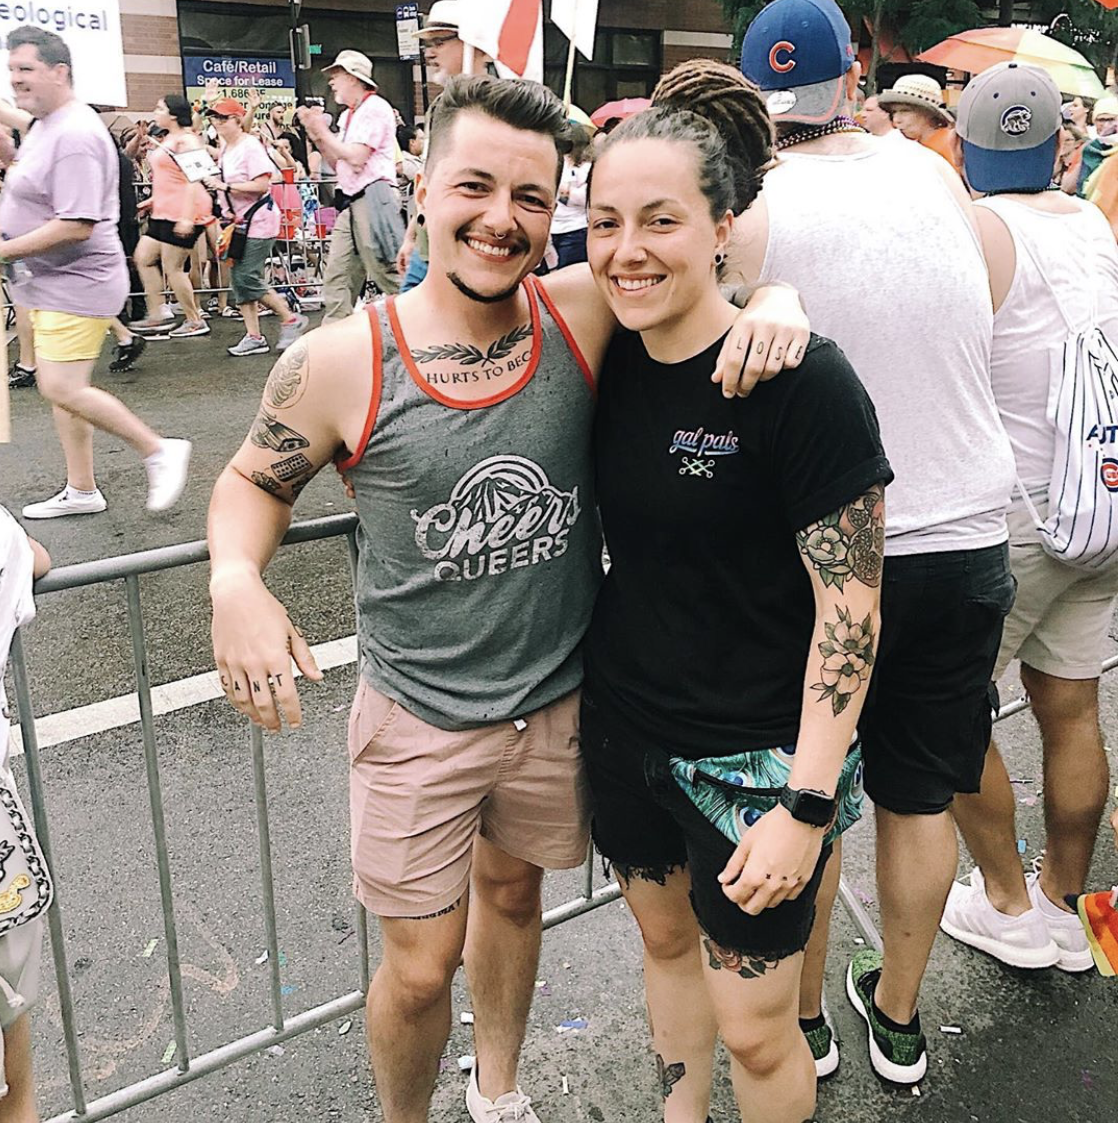 Chris (he/him) & Courtney (she/her) - Chris Flavnting our Cheers Queers Tank & Courtney in our Limited Edition Trans Pride Gal Pals tee!